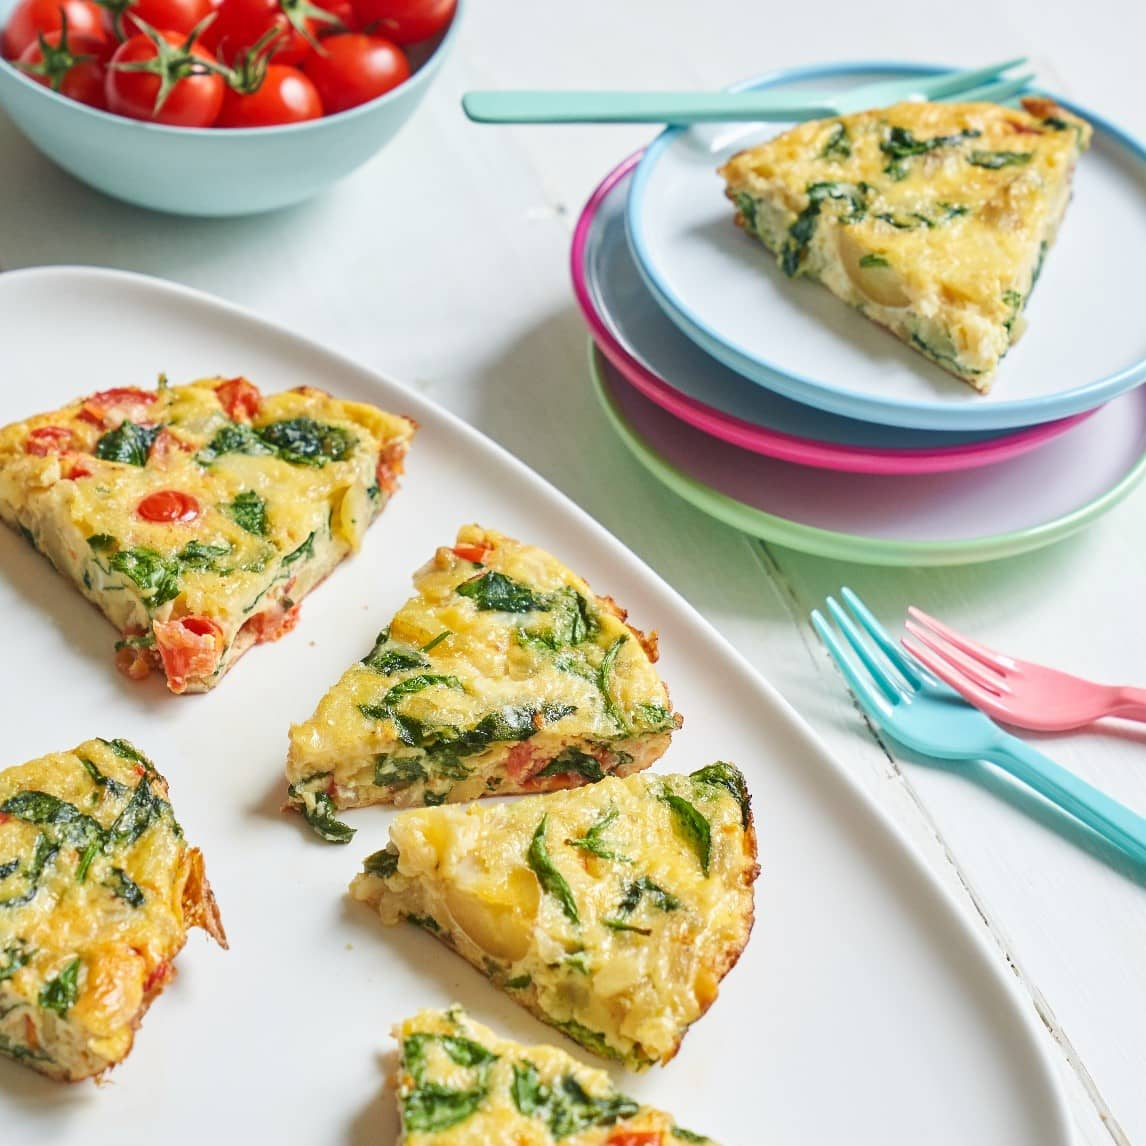 Spinach Frittata recipe by Annabel Karmel